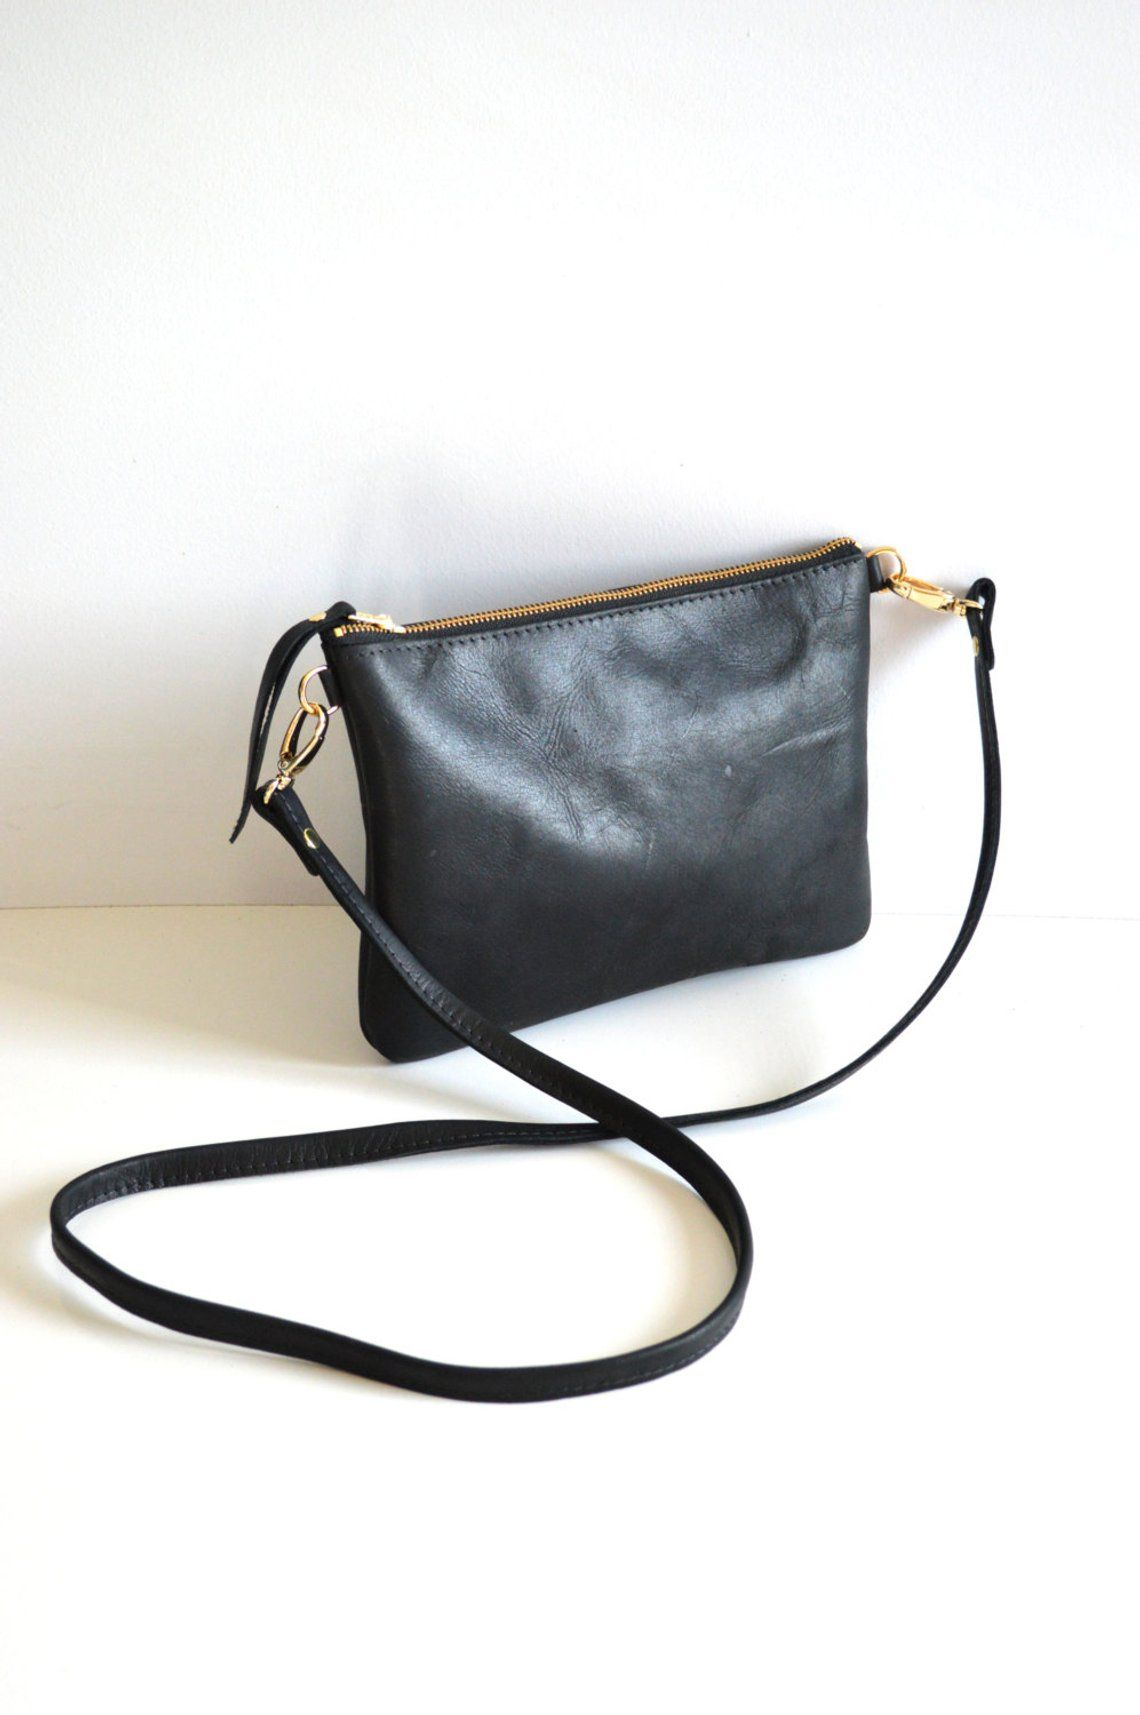 128c21f7e S T Y L I S H, M I N I M A L, F U N C T I O N A L - A soft leather  crossbody bag with a ...